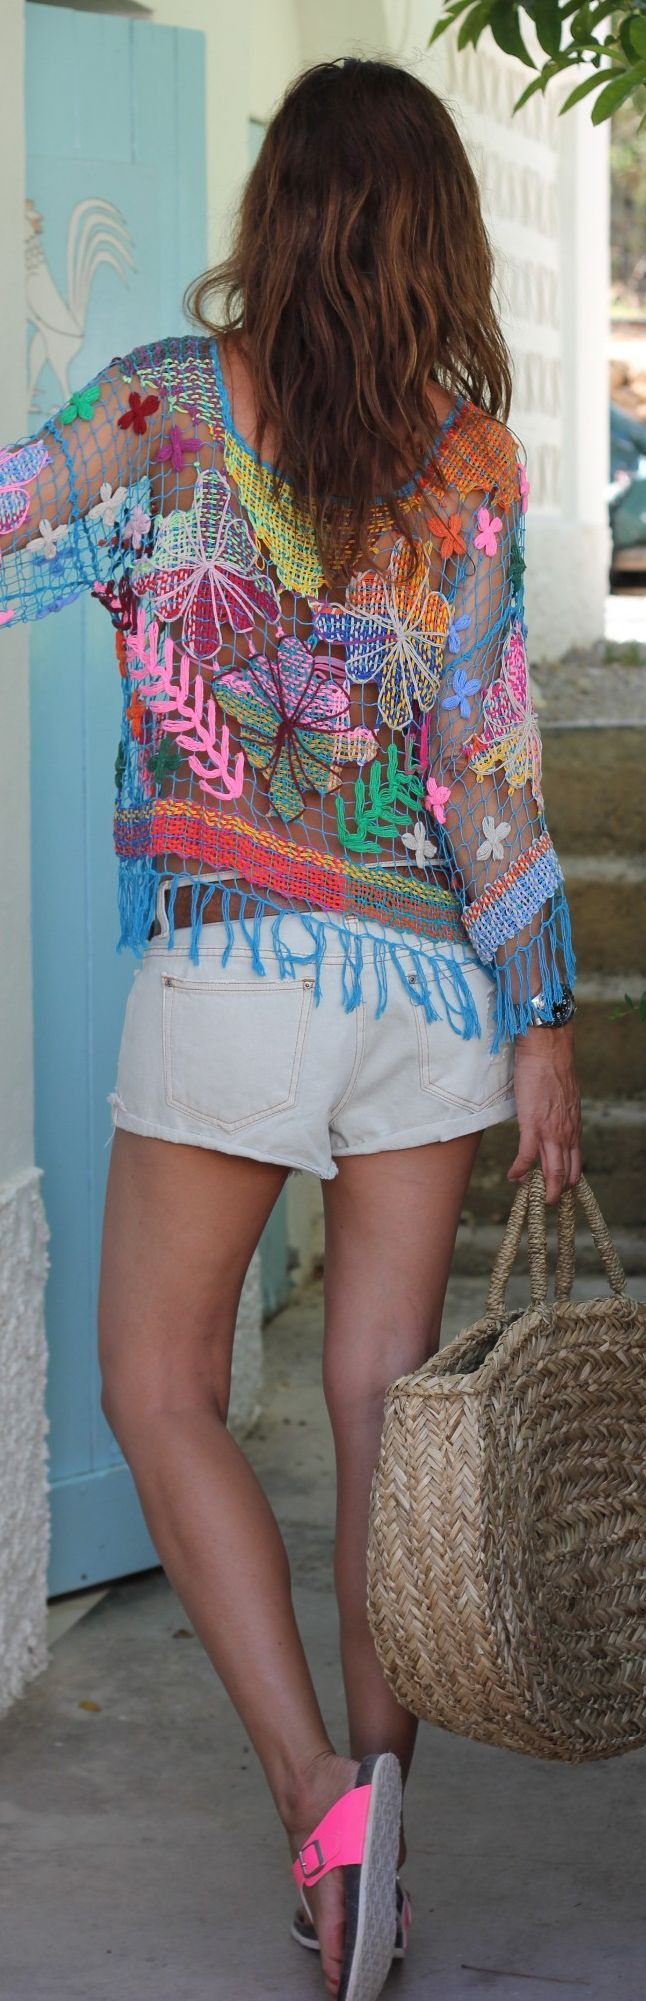 Boho Multicolor Colorblock Knit Pattern Fishnet Cover Up...love!